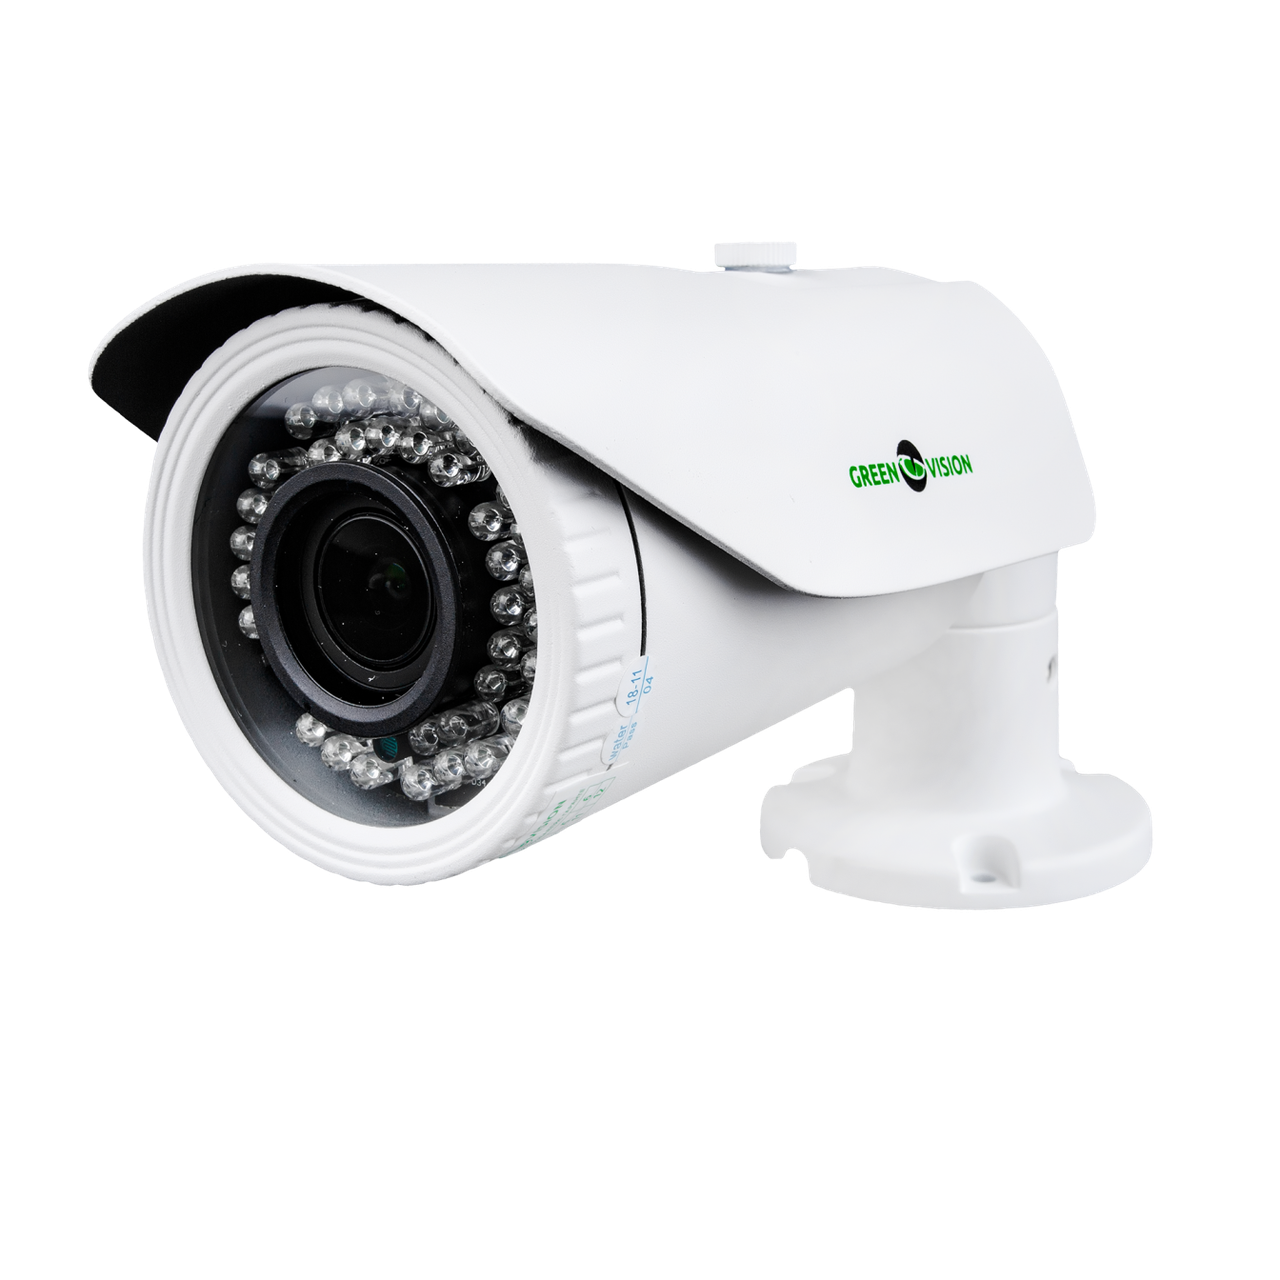 Наружная IP камера GreenVision GV-062-IP-G-COO40V-40